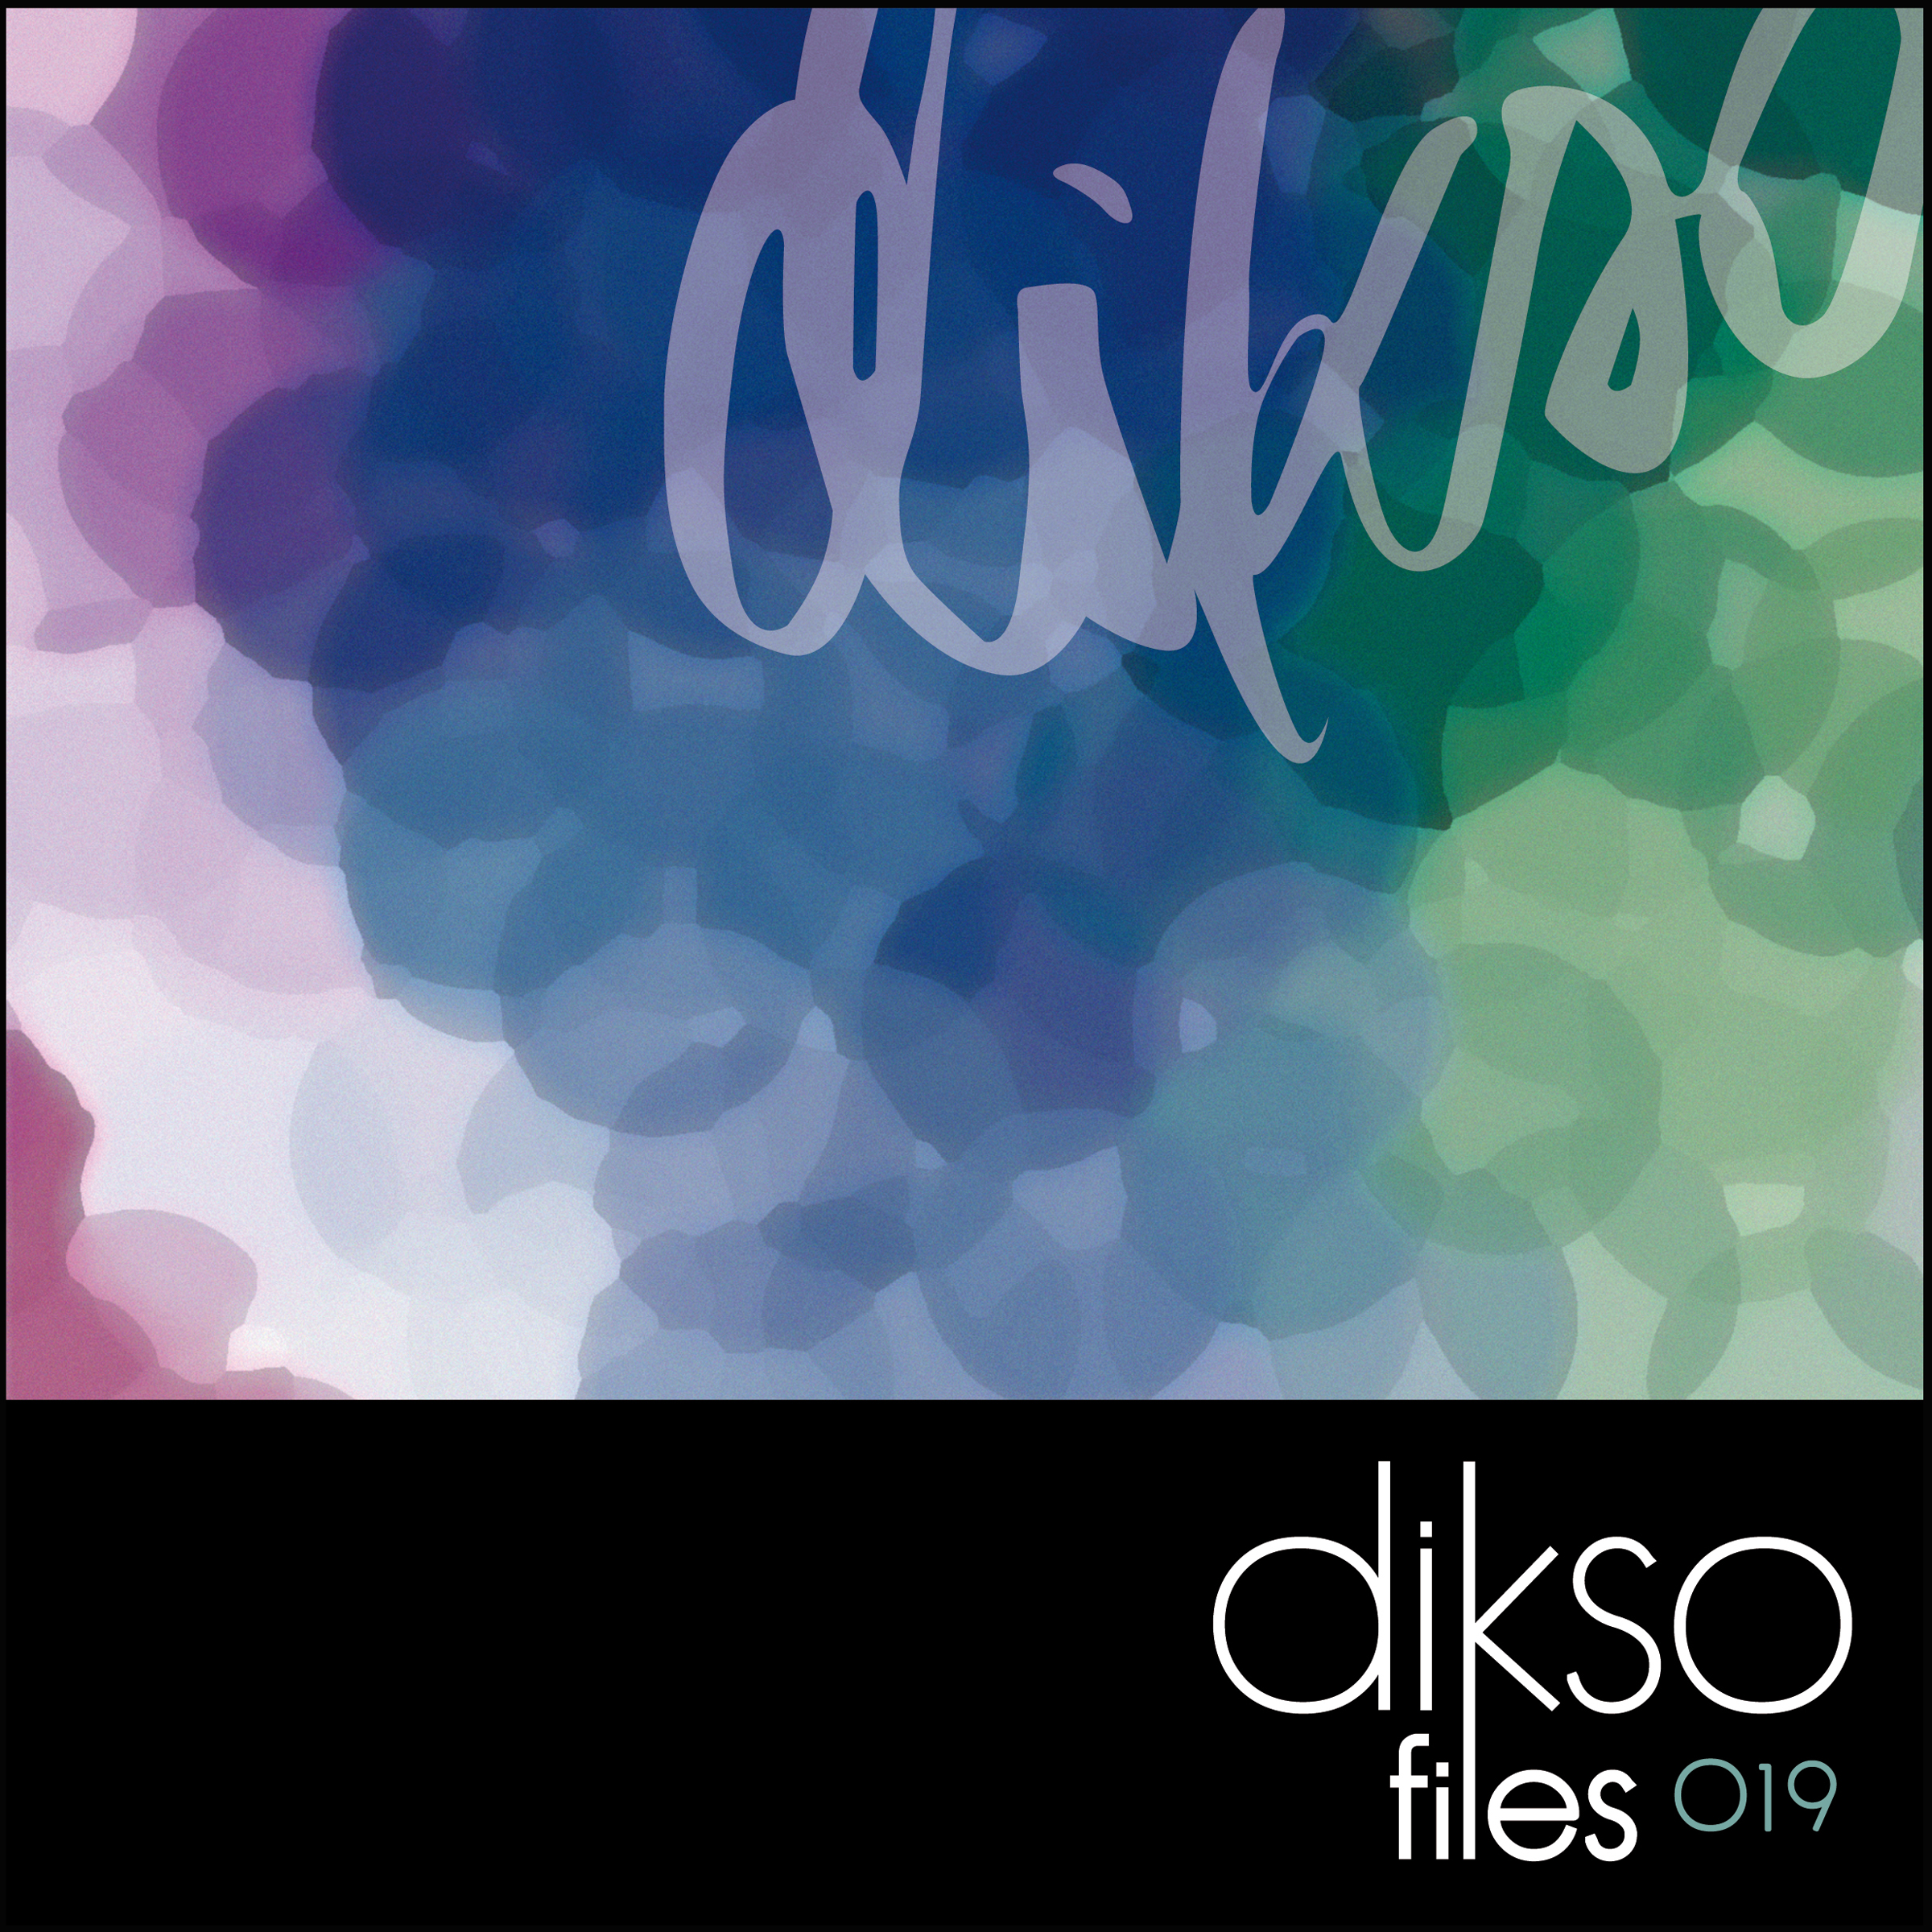 diksof019_artwork